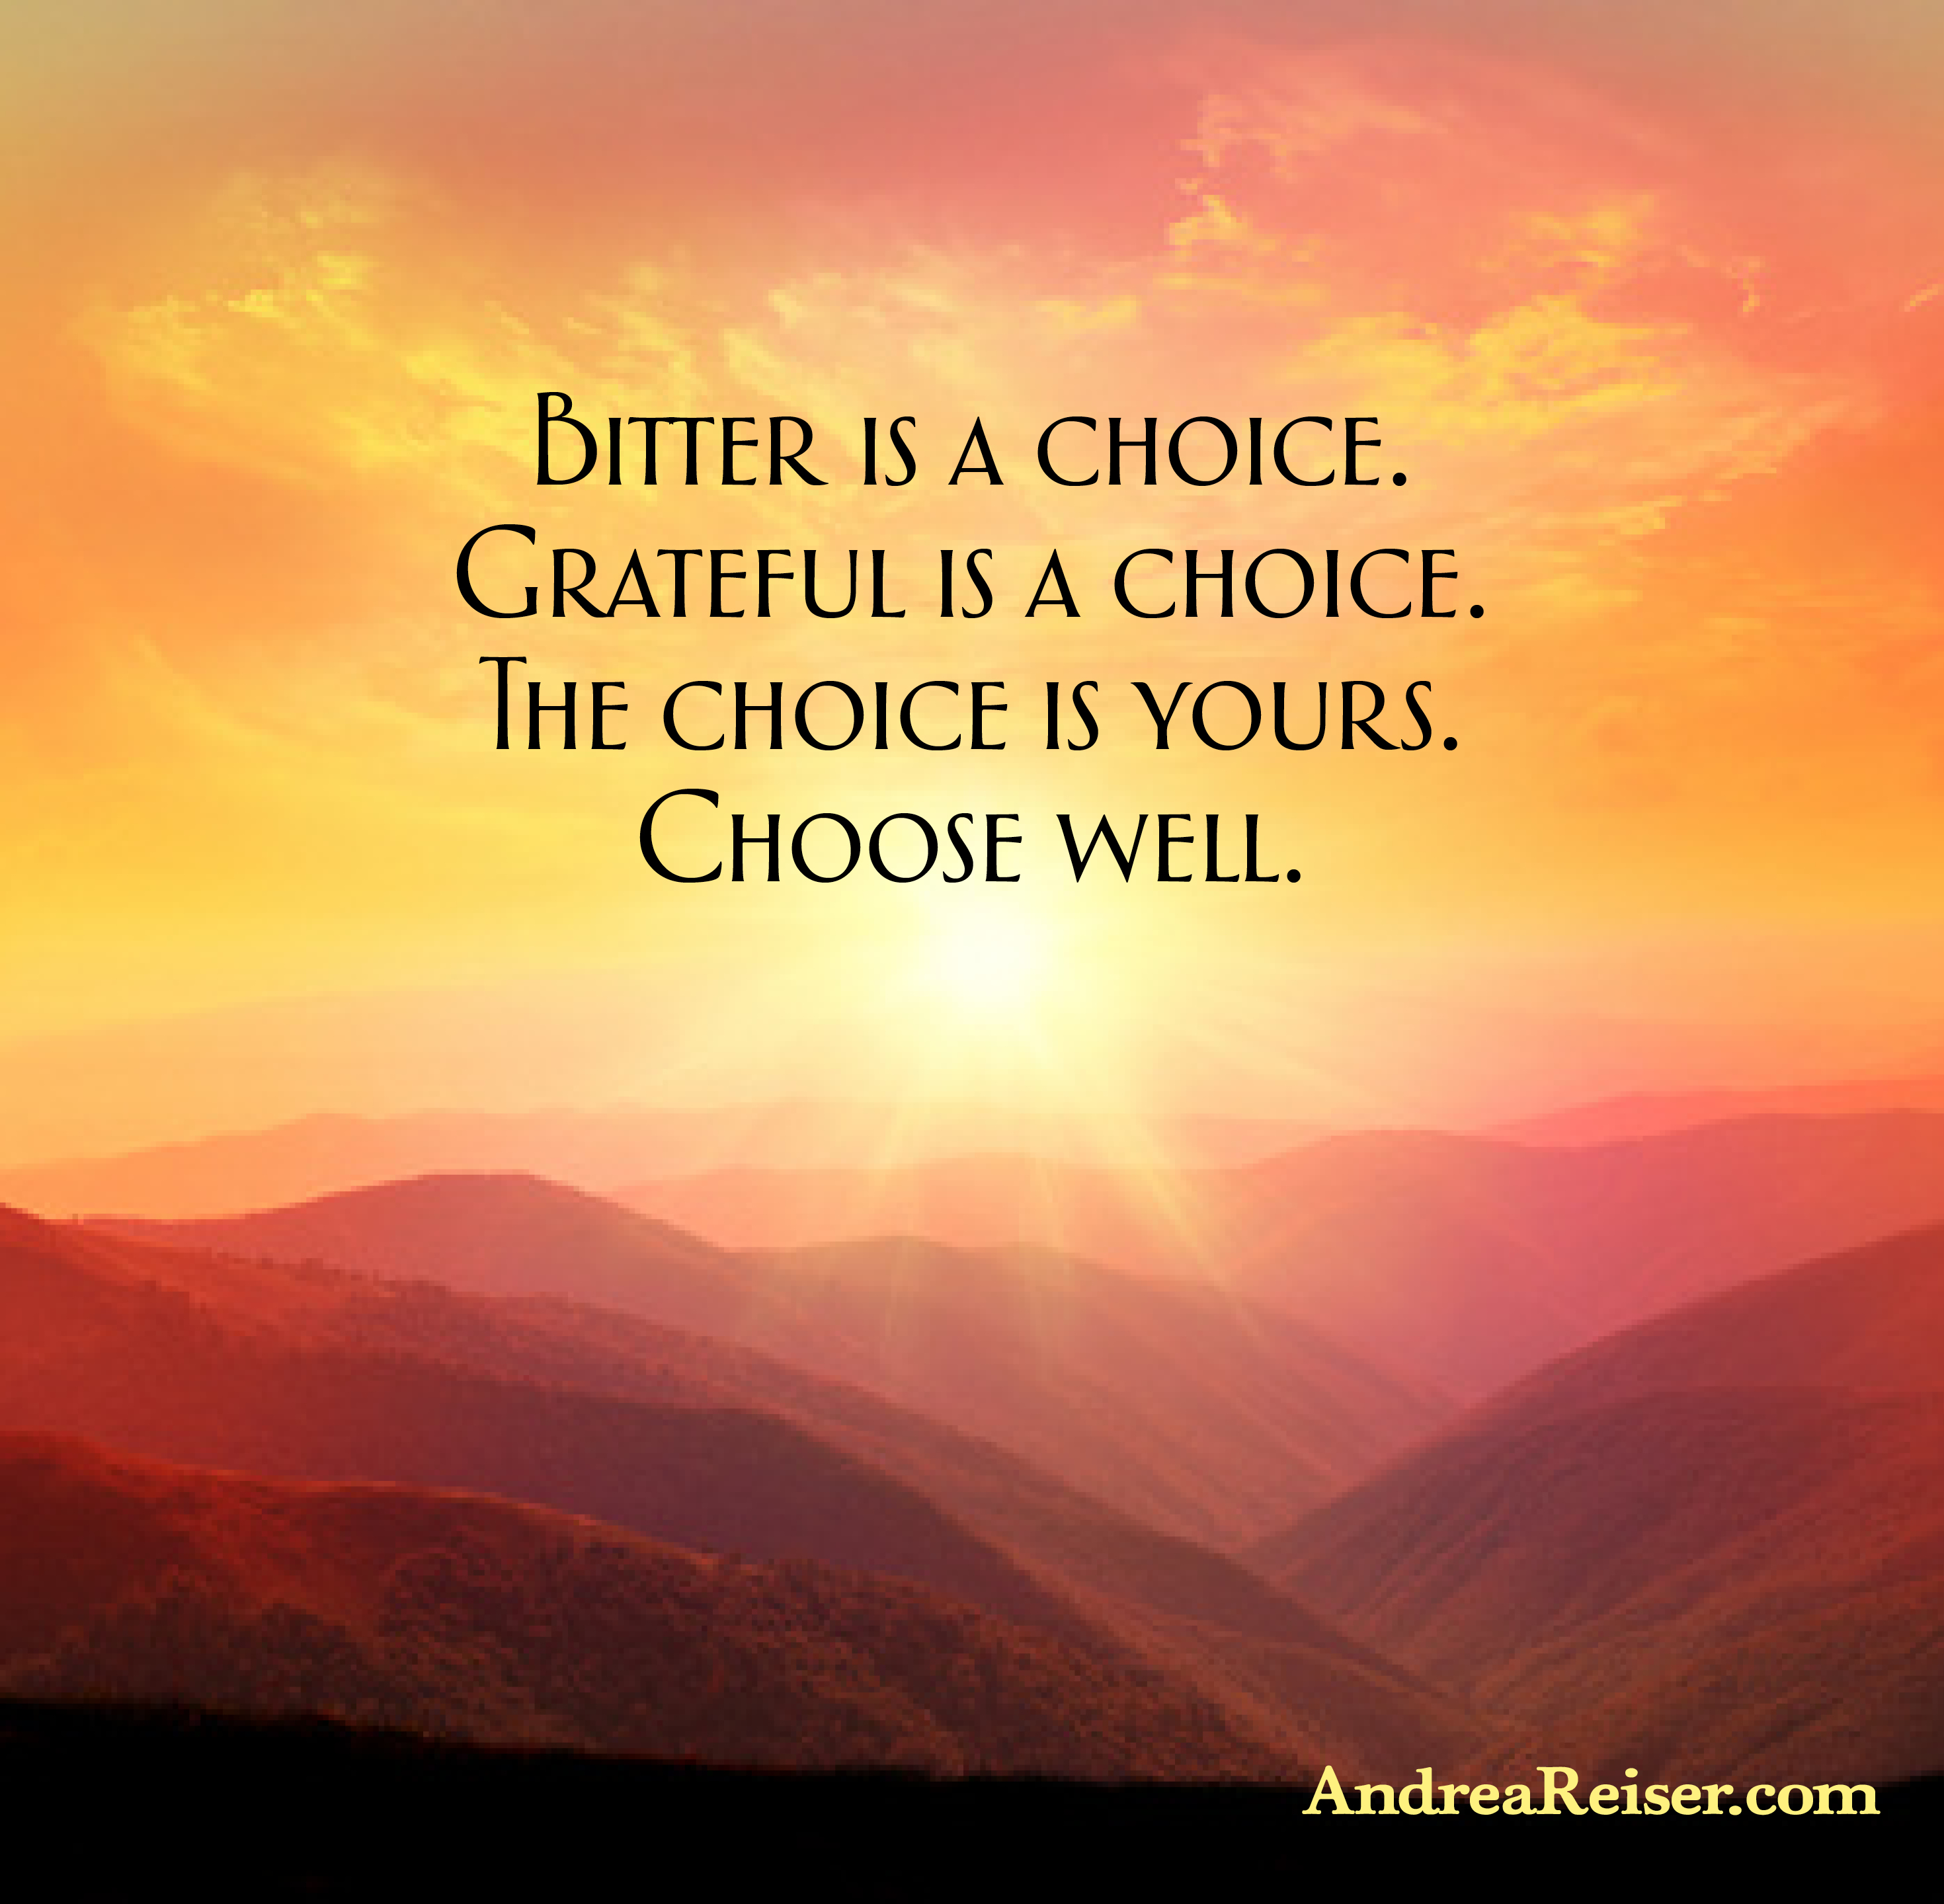 The Choice Quotes Andrea Author At Andrea Reiser  Page 27 Of 86 Andrea Reiser